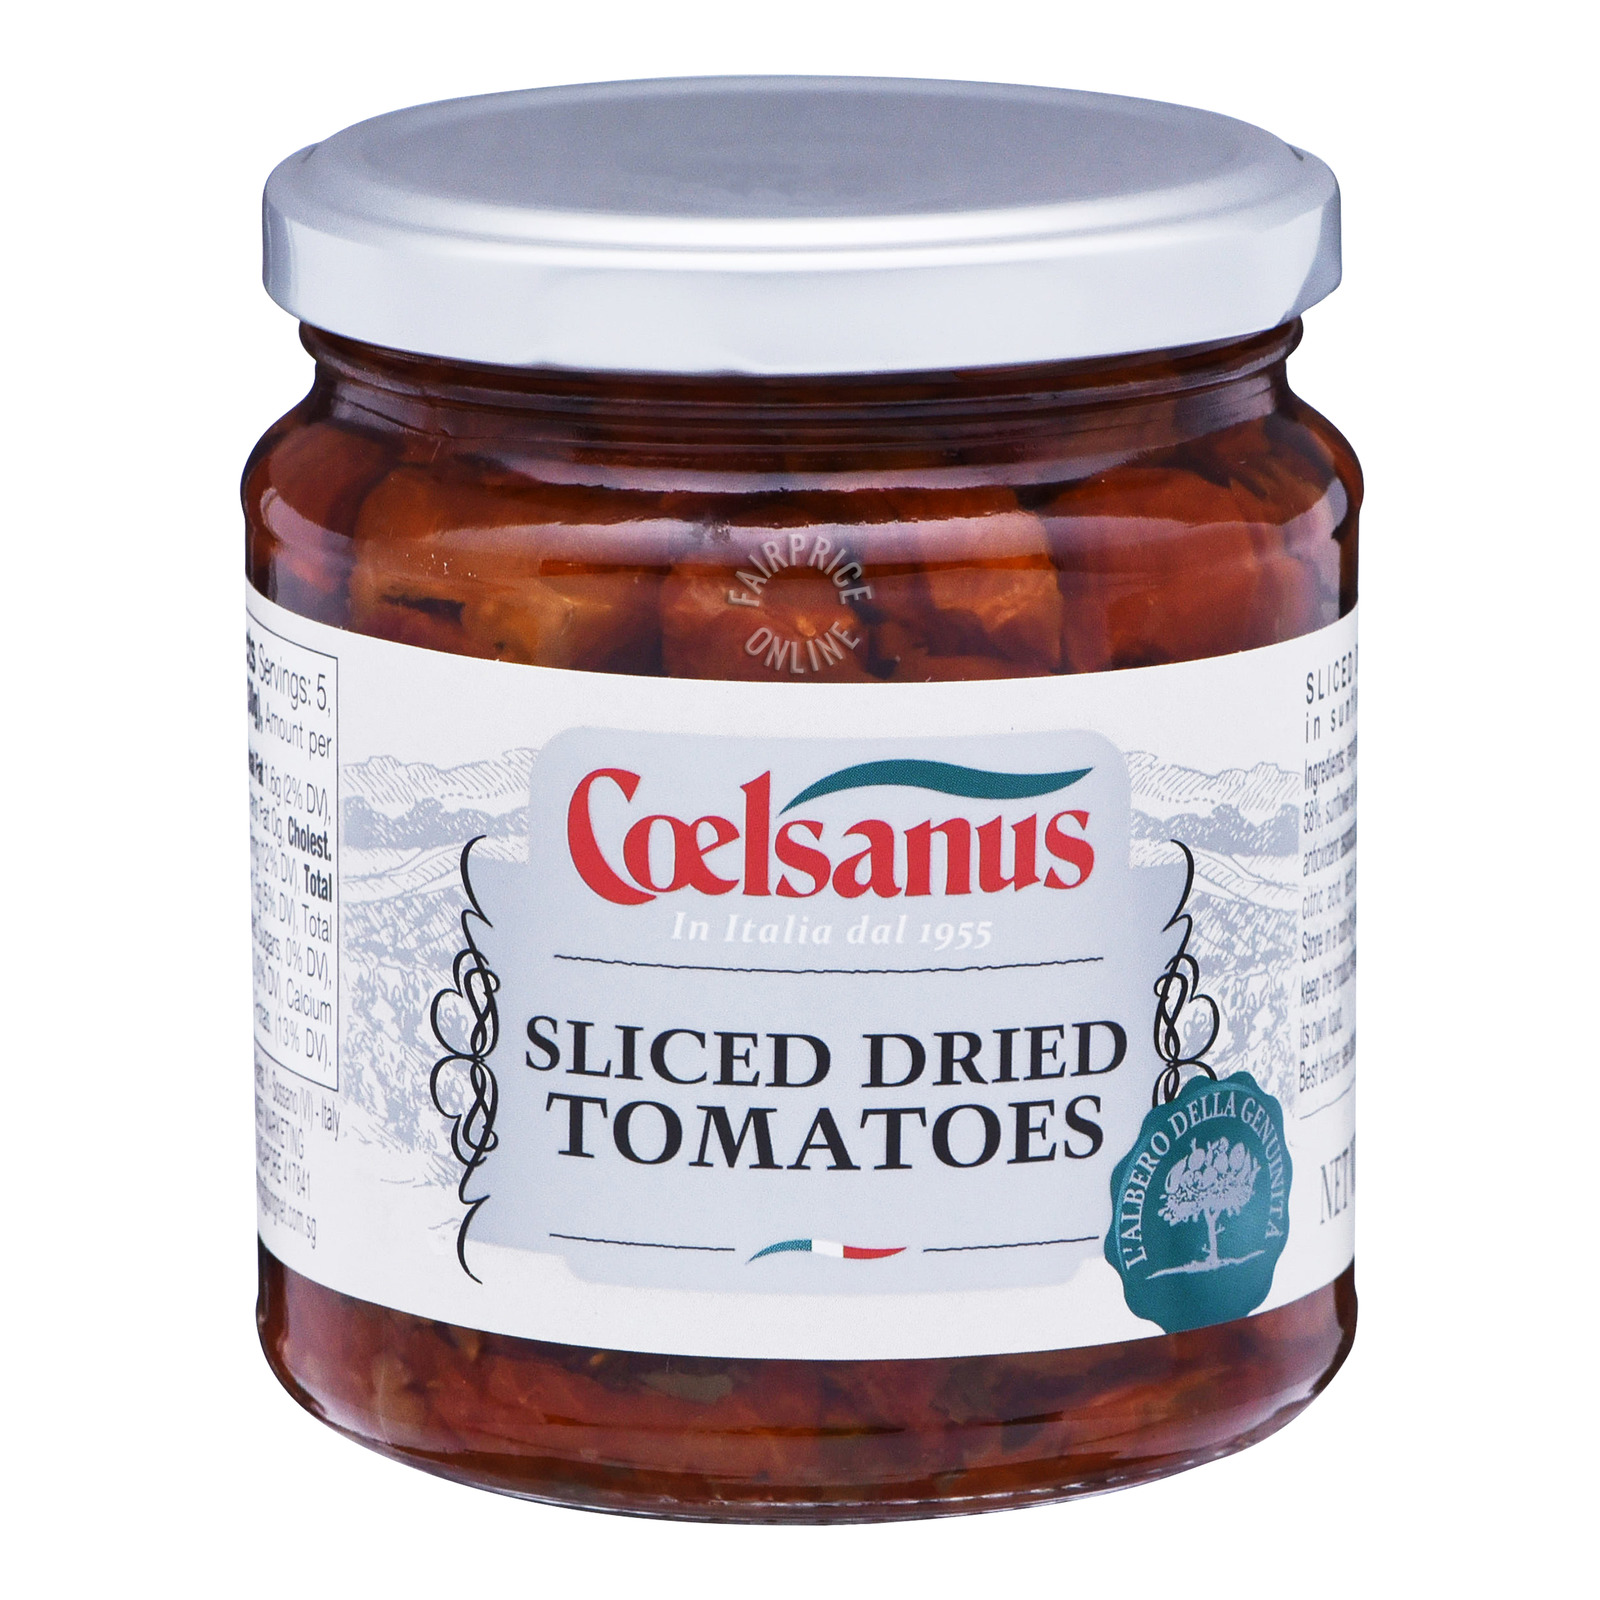 Coelsanus Dried Tomatoes in Sunflower Oil - Sliced